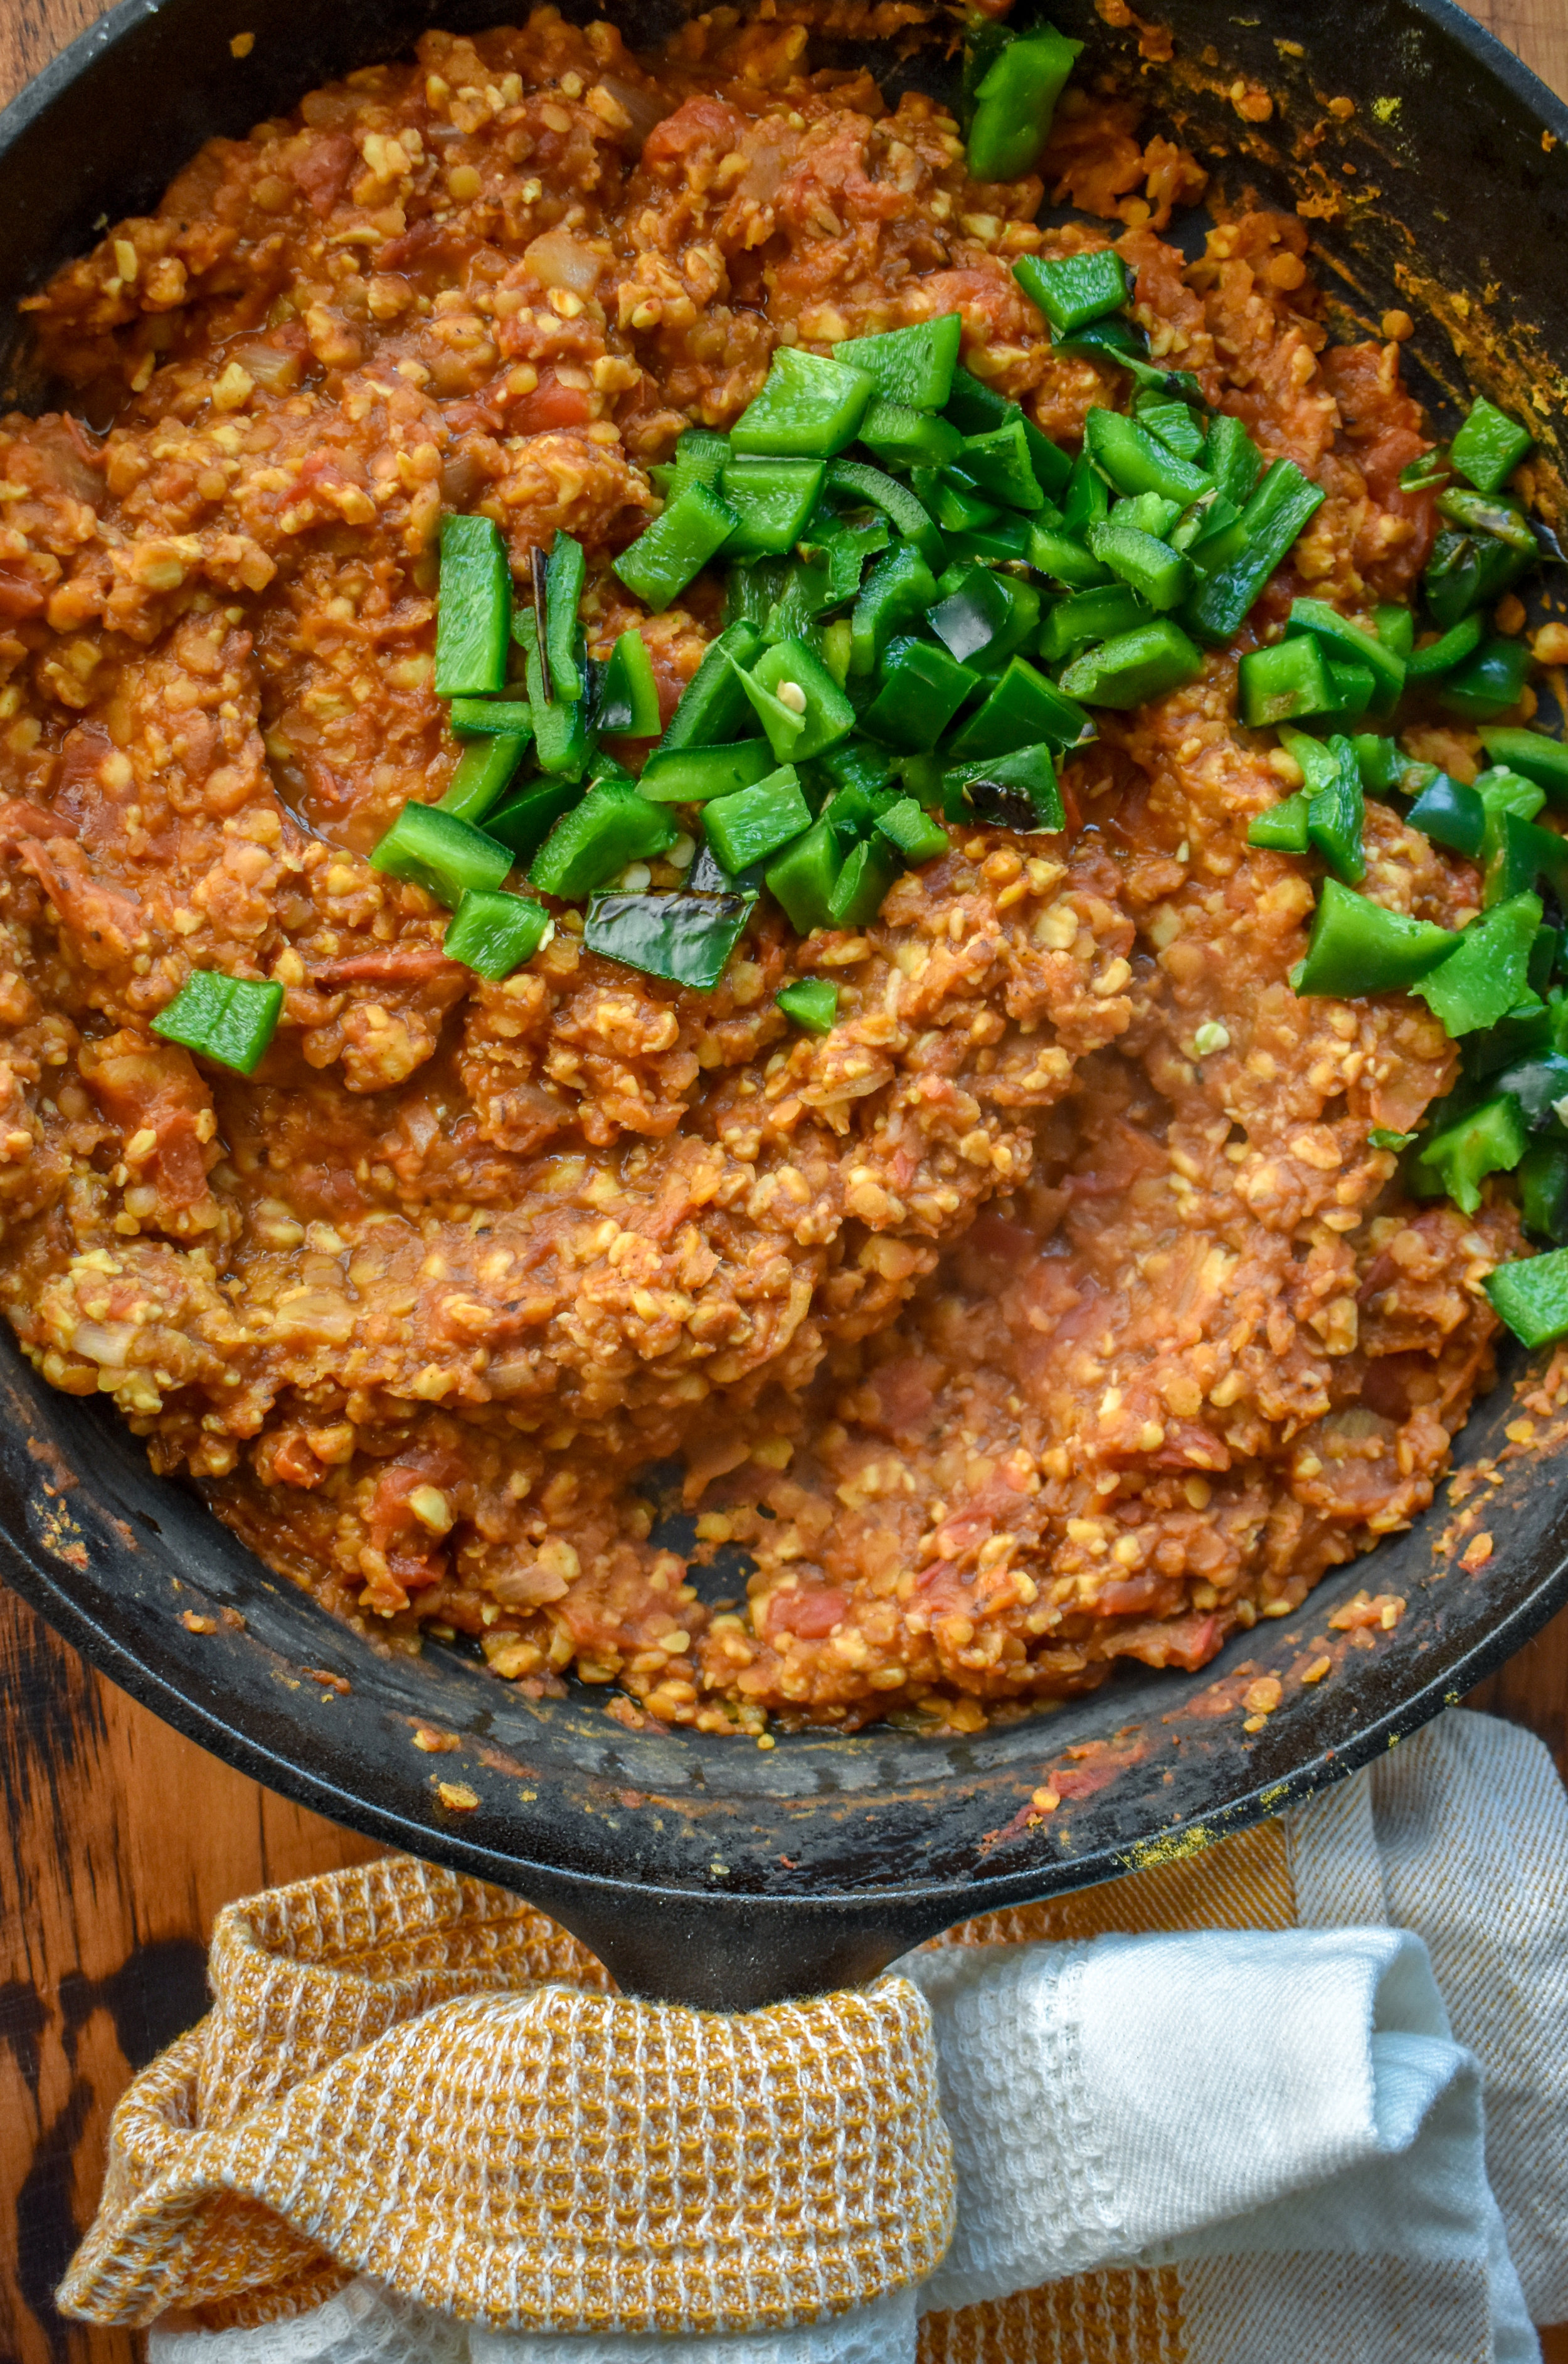 5. Add the rest of the sloppy joe ingredients to the pan and turn the heat to medium low. Once the poblano is charred, pull off the stove and dice carefully (its hot!). Mix that into the mixture. Turn the heat to low and let it simmer while we finish the recipe.